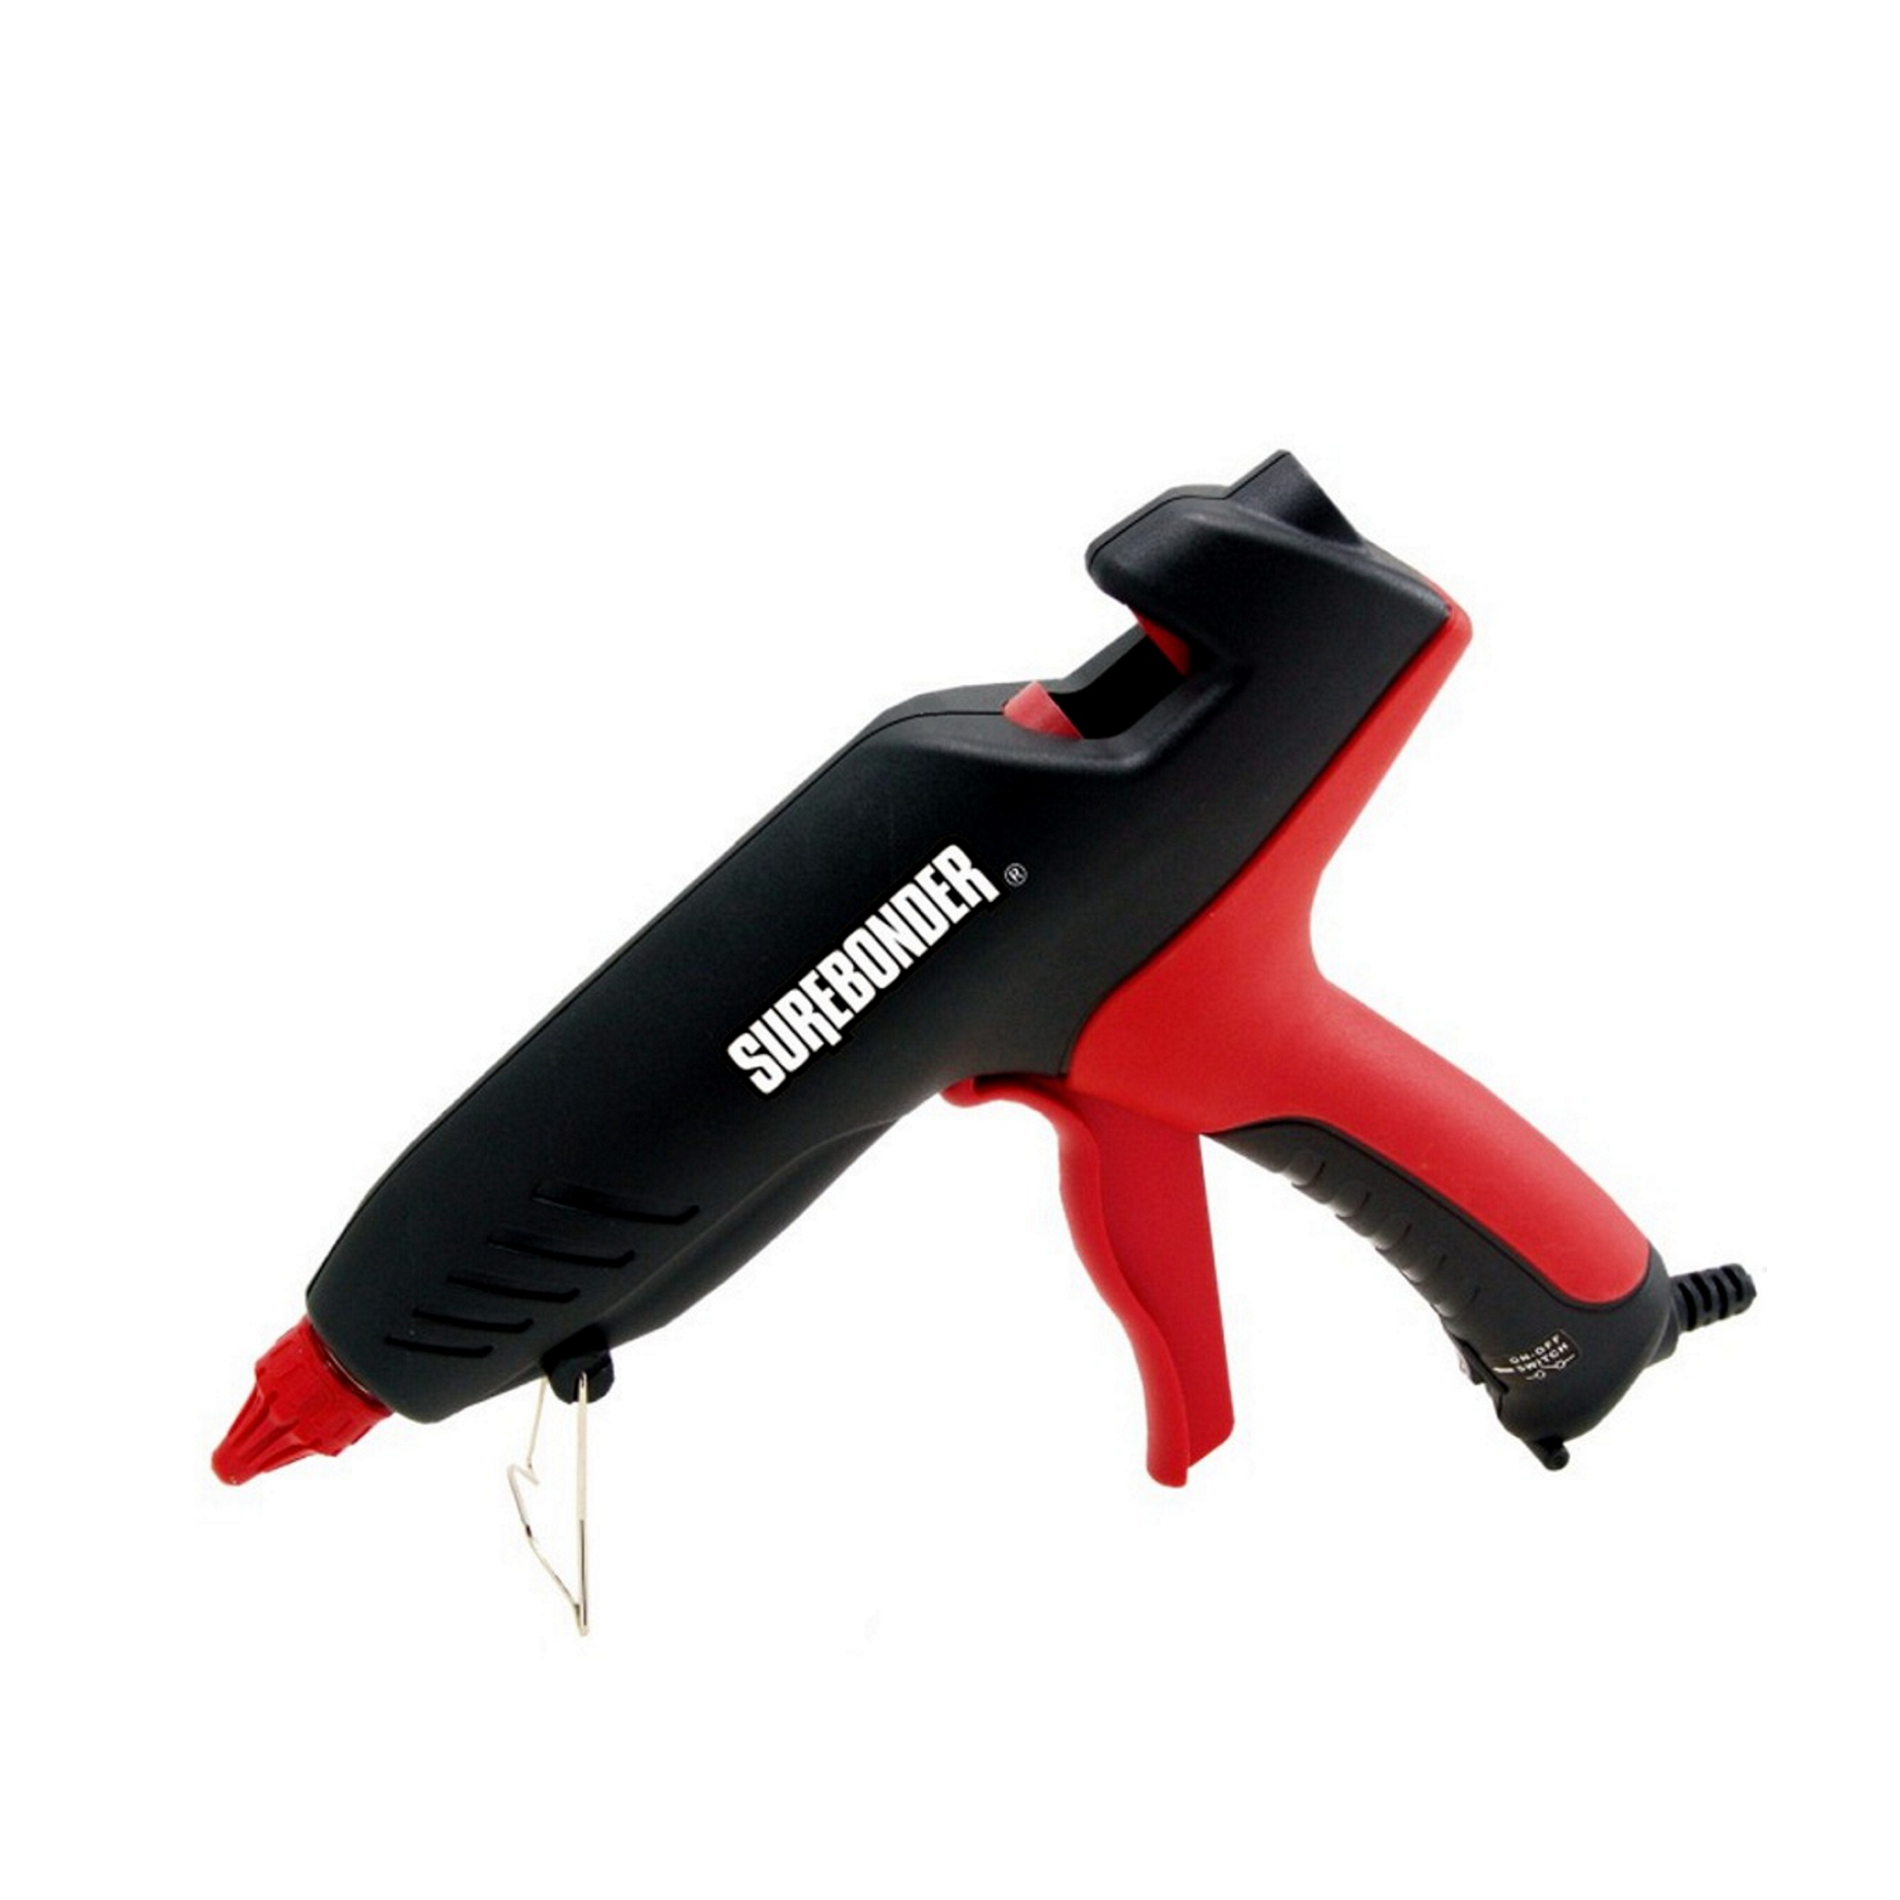 Professional 100 Watt High Temperature Glue Gun